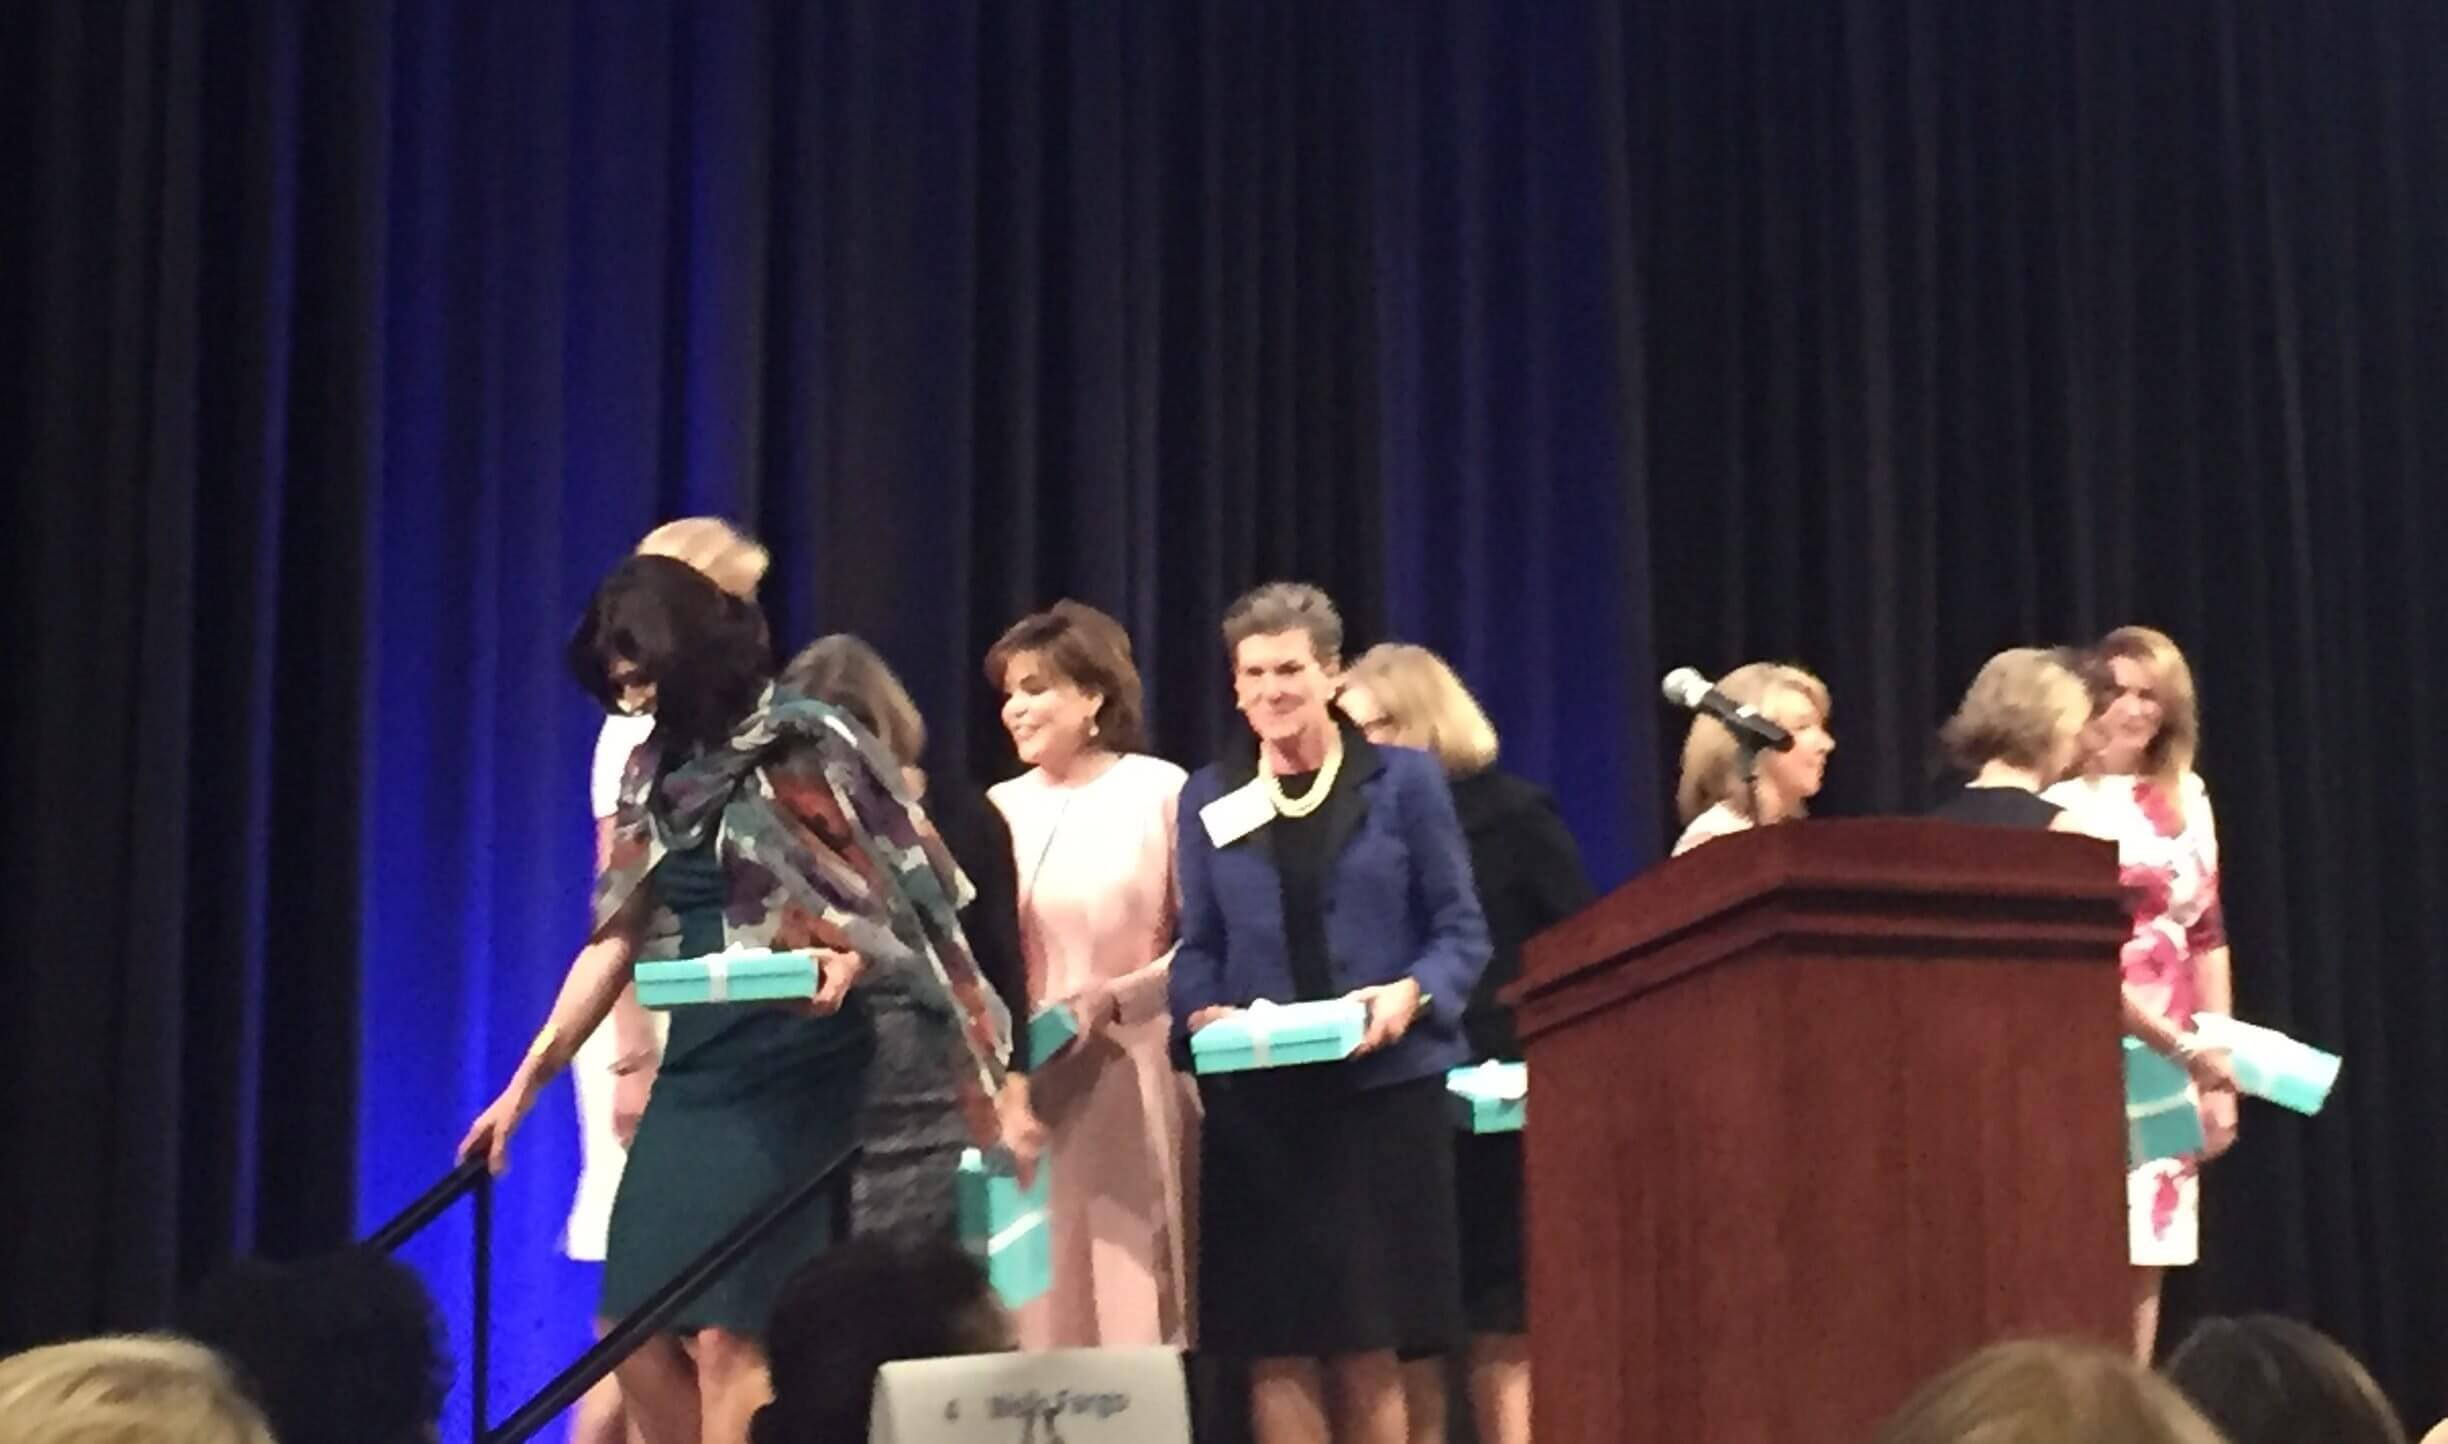 2017 honorees were congratulated by Christine Powell, executive director of the Women's Resource of Greater Houston, and Jessica Neikirk, president of the Board of Trustees for the Women's Resource.